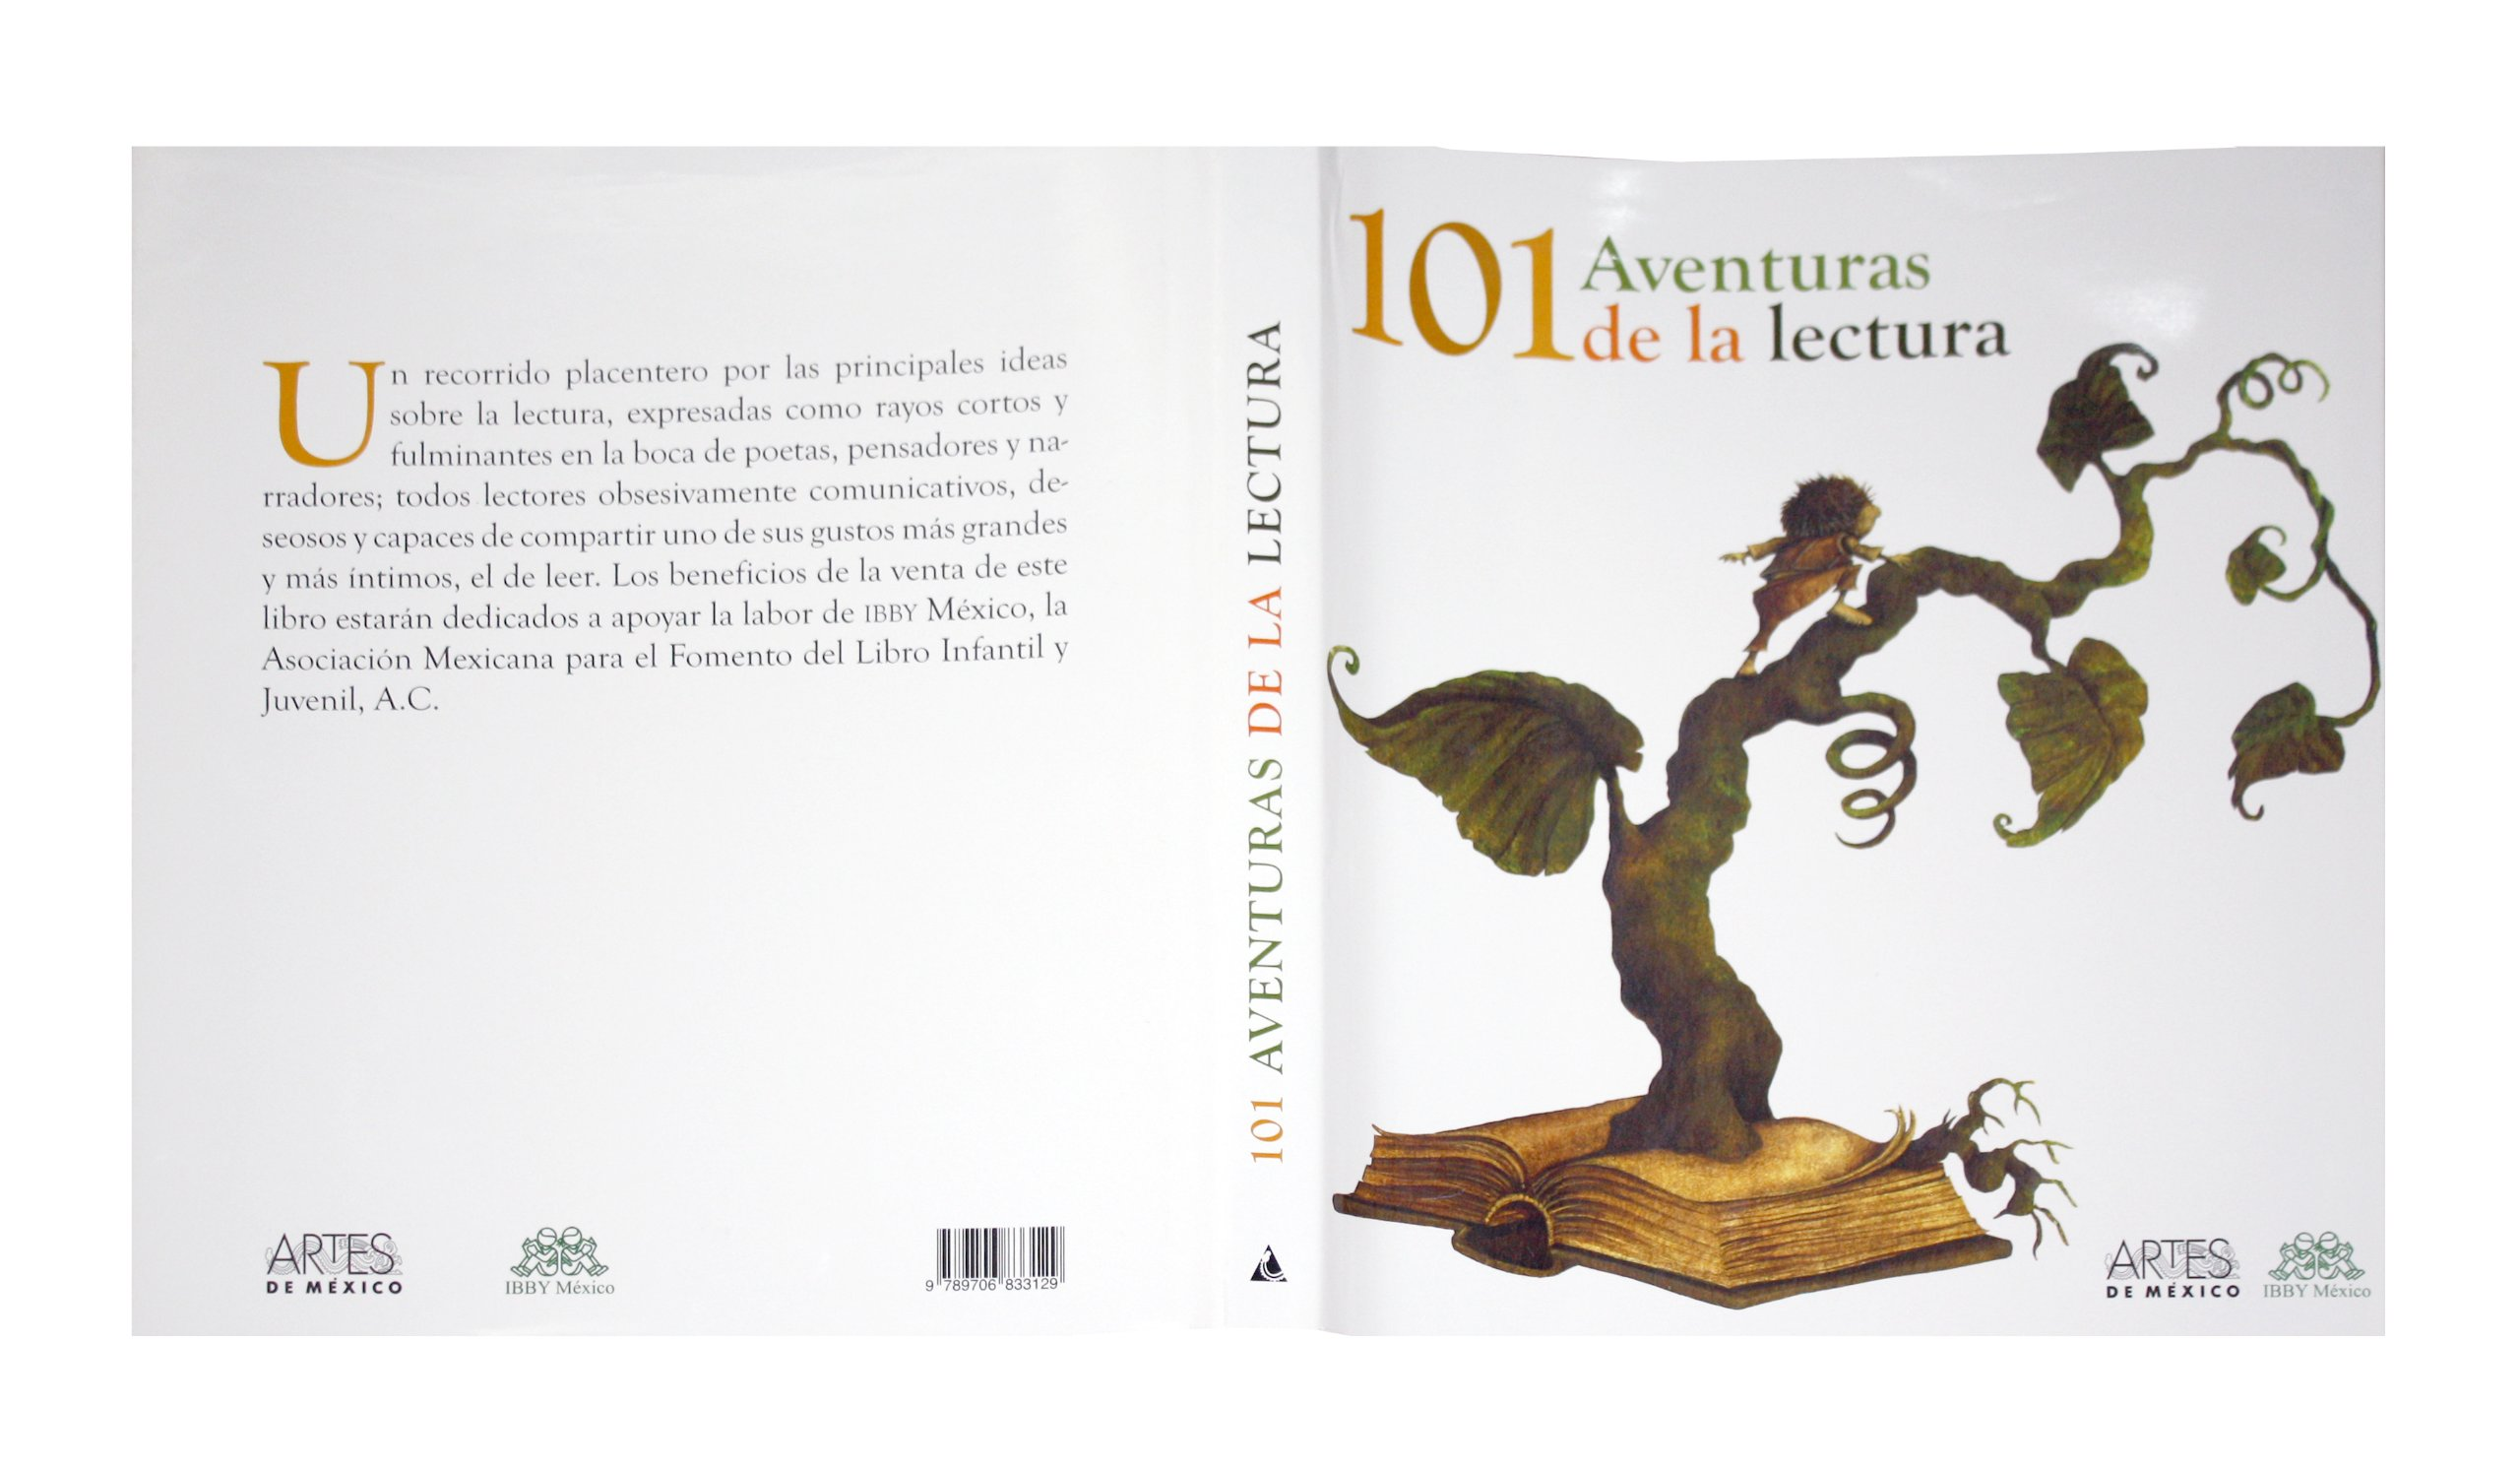 101 Aventuras de la lectura (101 Adventures in Reading) (Spanish Edition): VV.AA.: 9789706833129: Amazon.com: Books